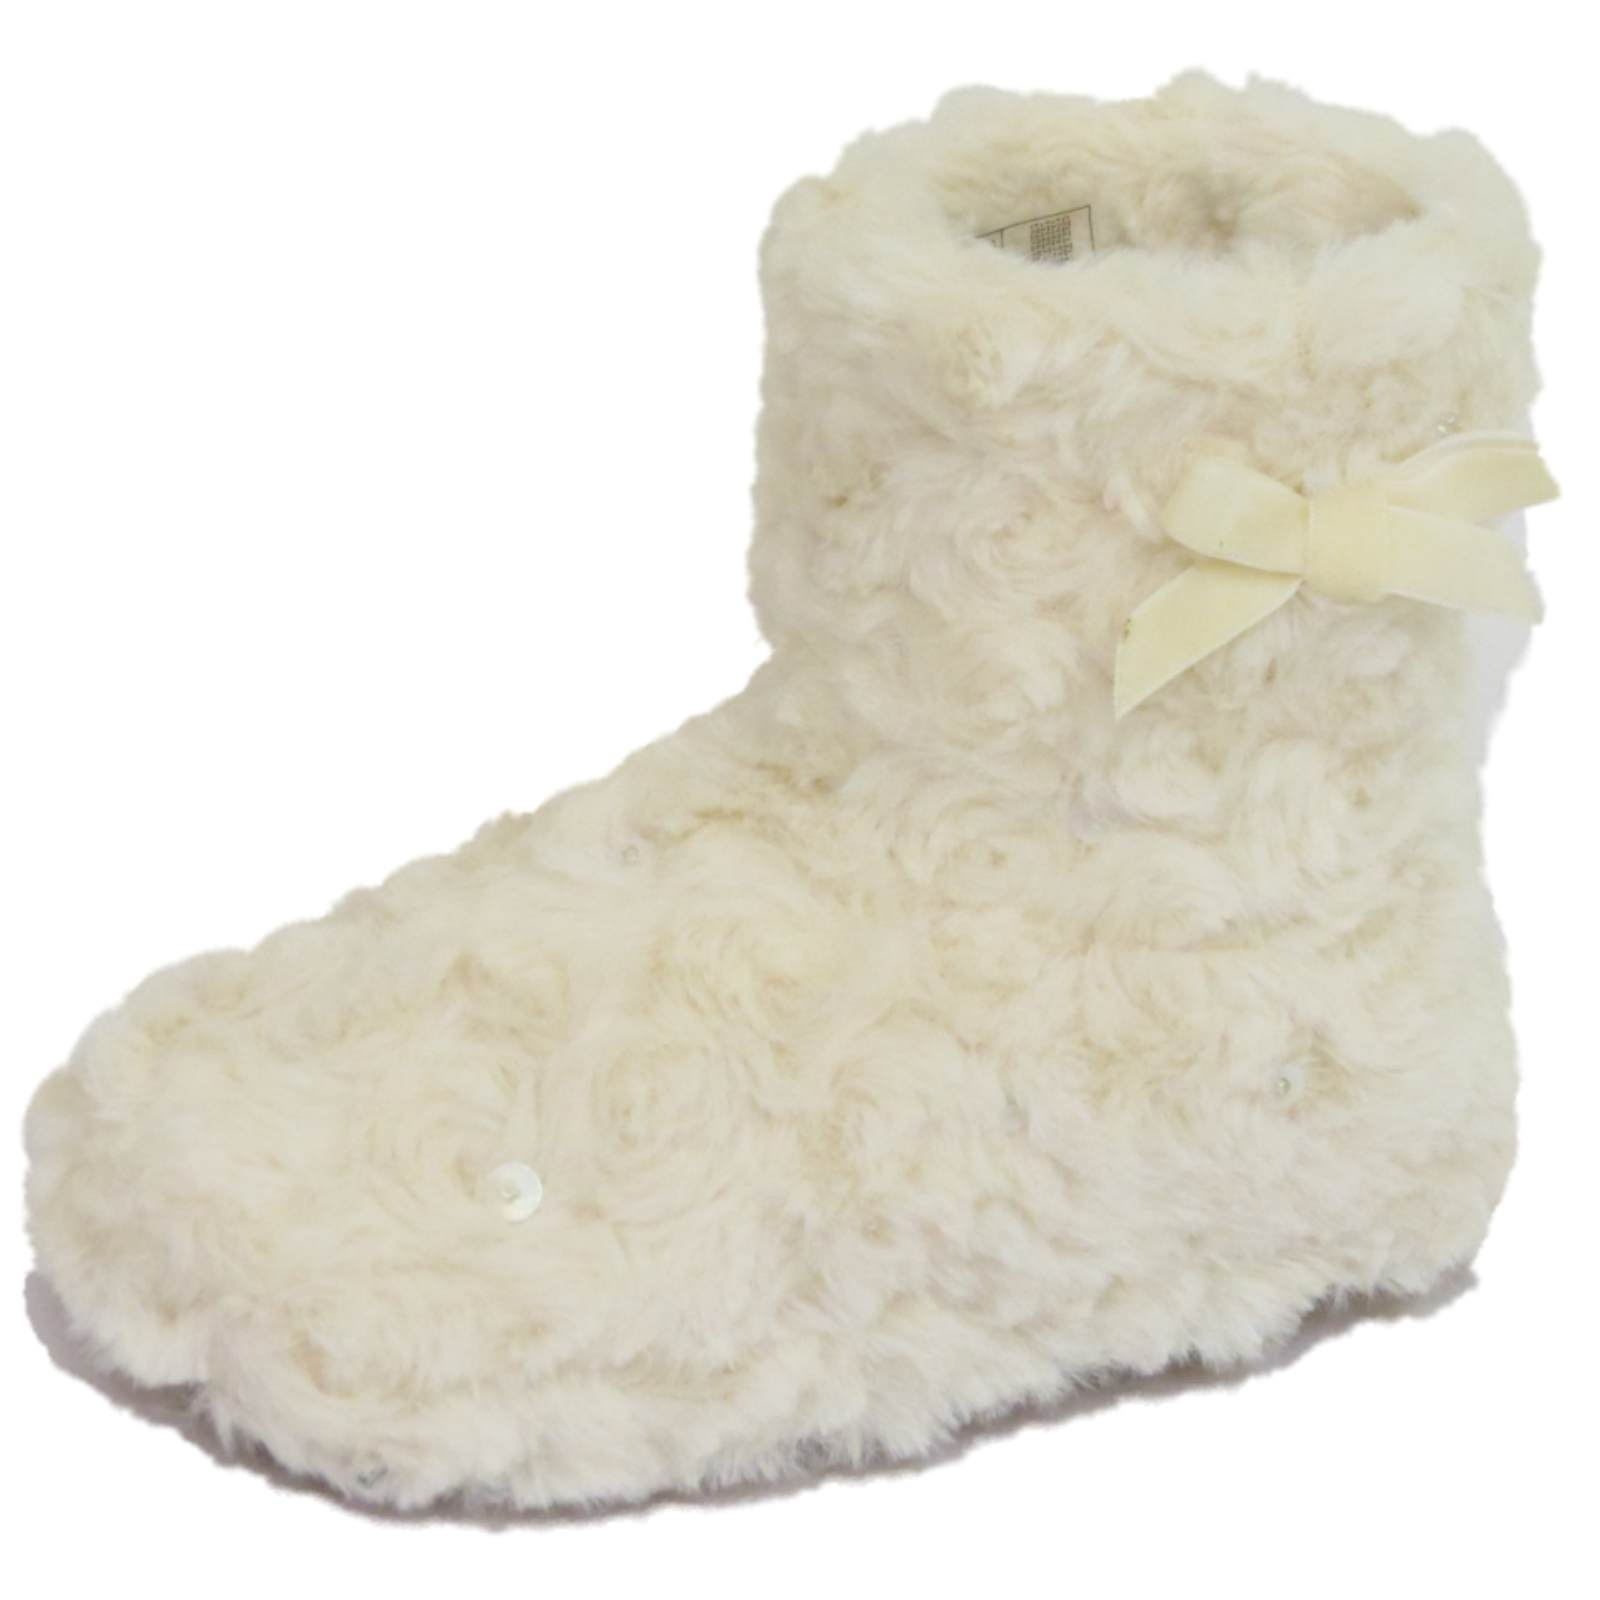 a1e7a4cd3 GIRLS CHILDRENS KIDS FLAT CREAM PULL-ON FLUFFY SLIPPER BOOTS BOOTIES ...